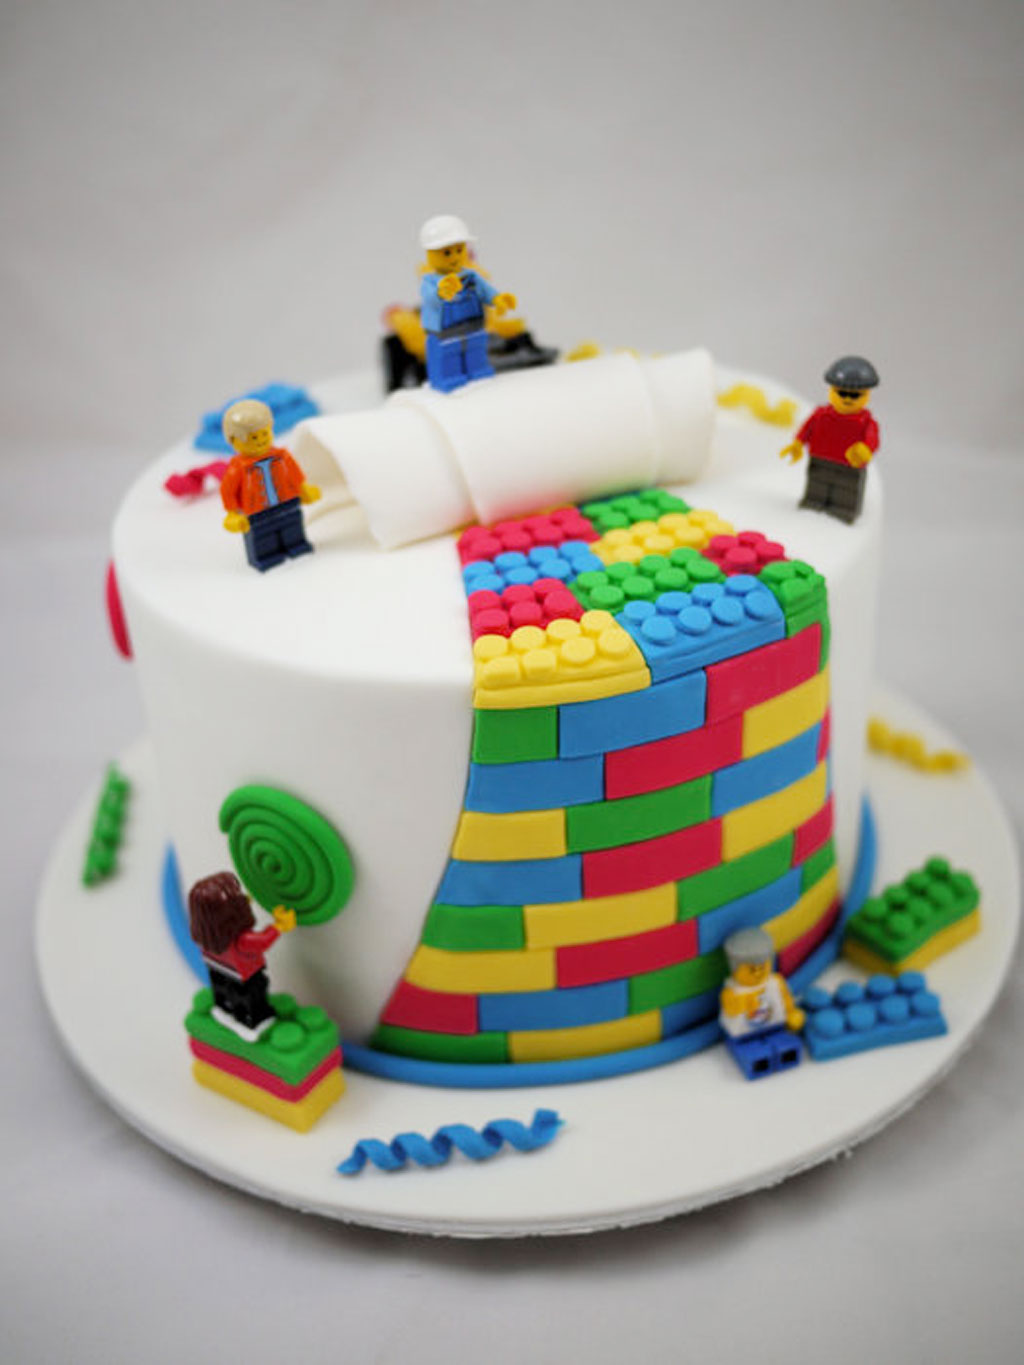 Lego Birthday Cake Cake Ideas and Designs